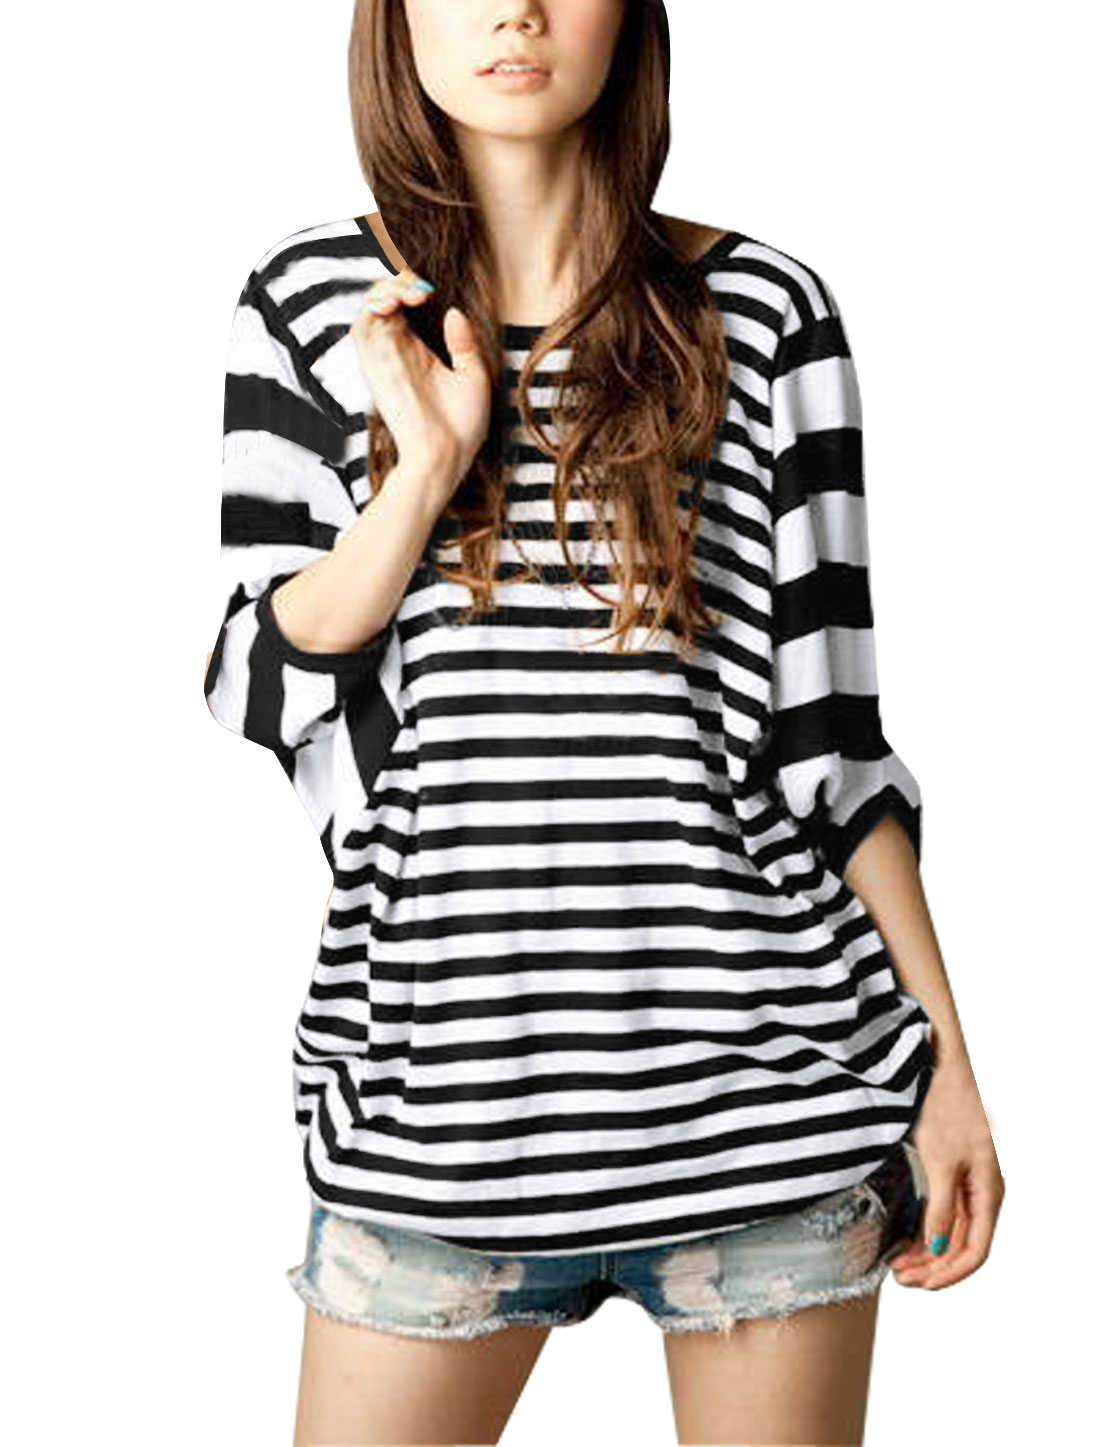 Woman Black White Stripes Dolman Sleeve Elastic Hem Blouse Top S